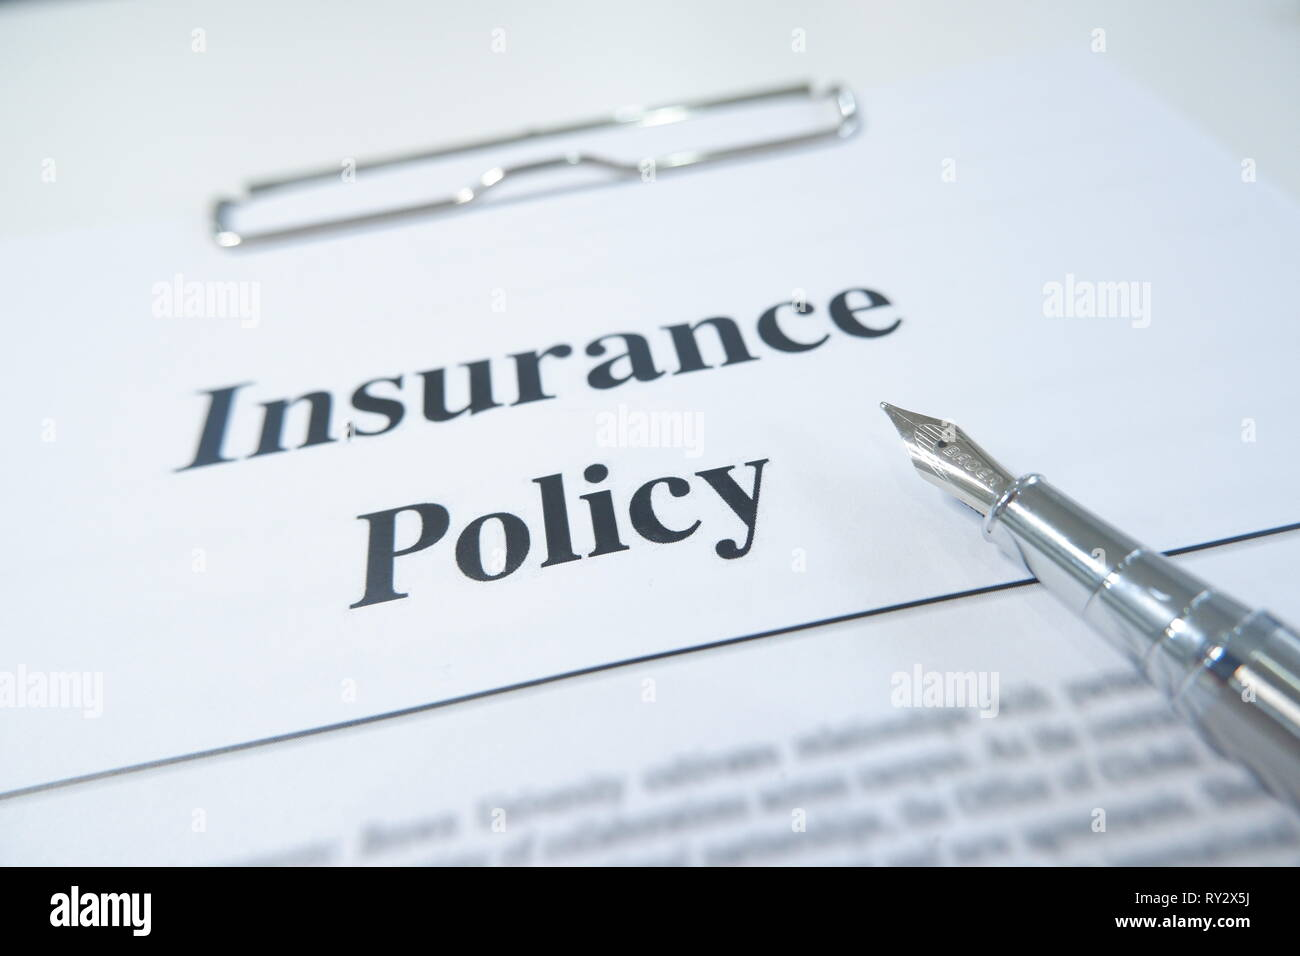 insurance policy form and pen on desk in office showing risk concept. Life; Health, car, travel insurance concept. - Stock Image